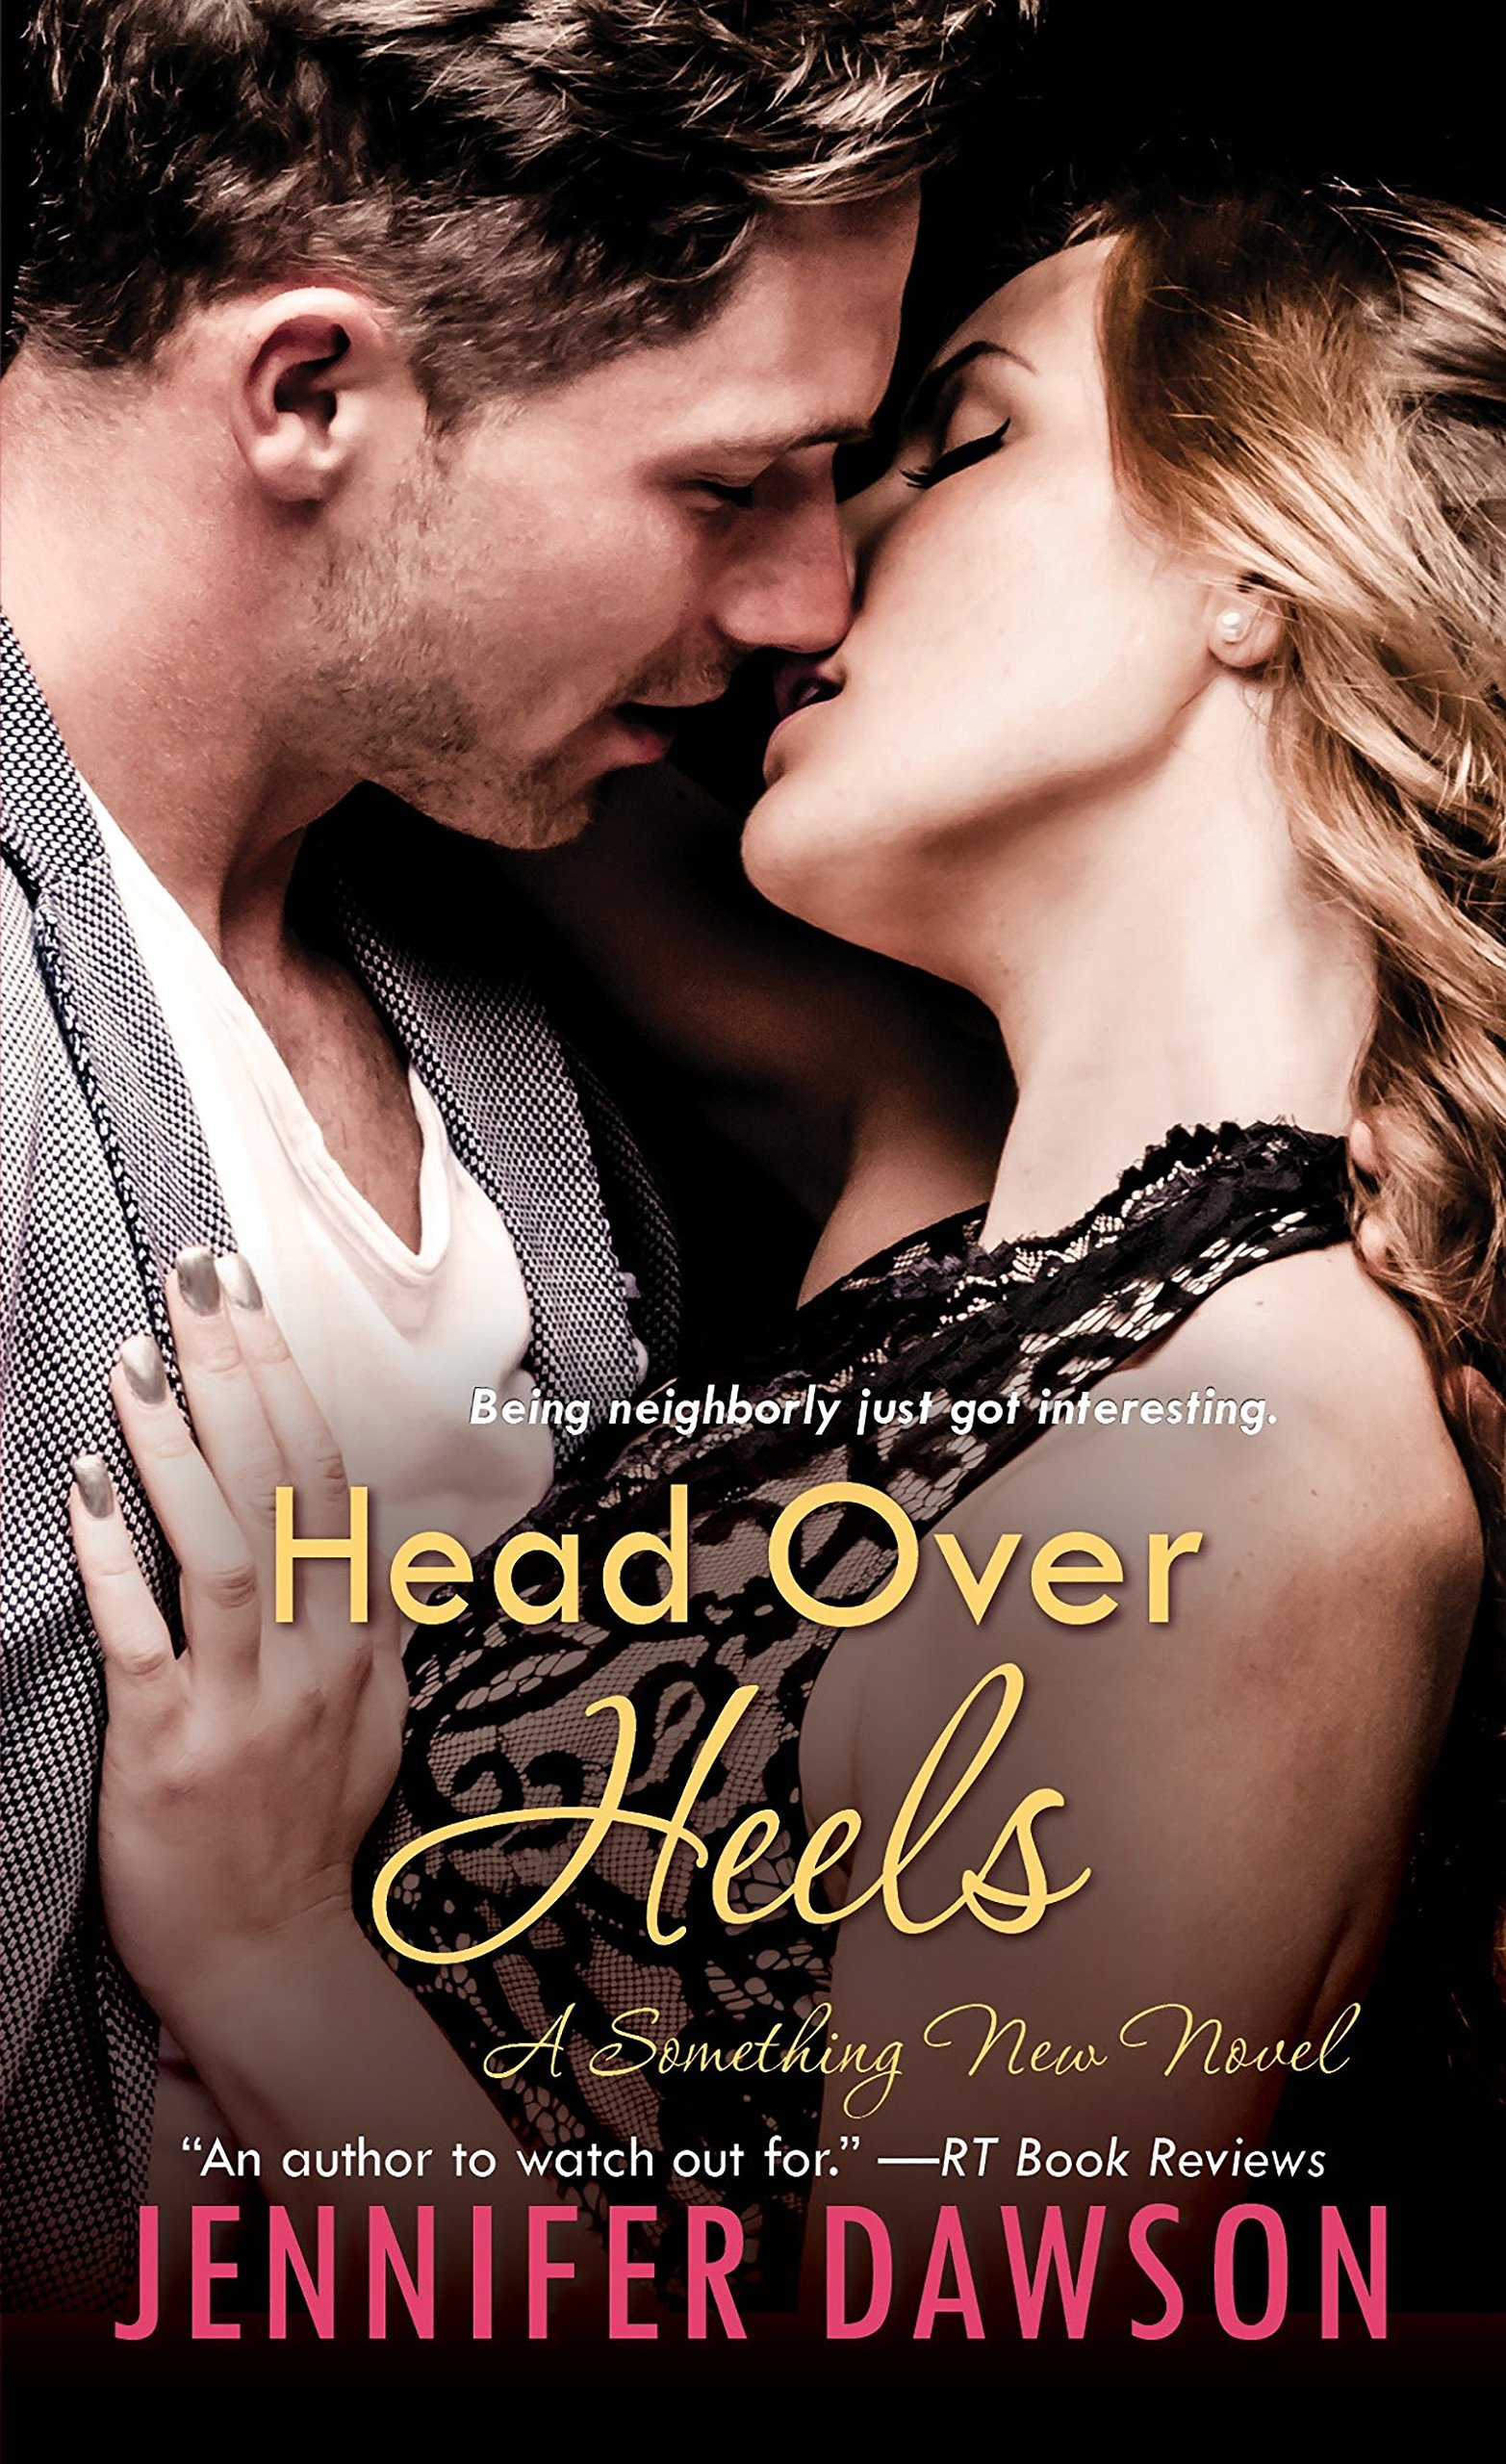 Head Over Heels A Something New Novel Jennifer Dawson